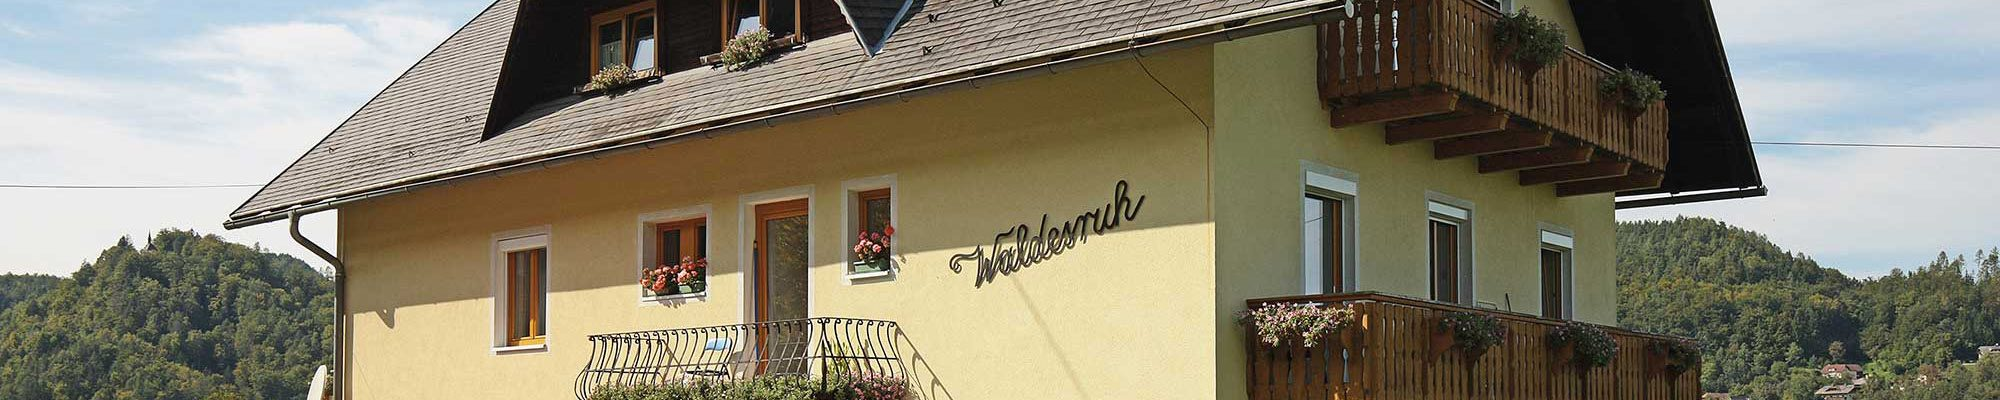 Appartmenthaus Waldesruh